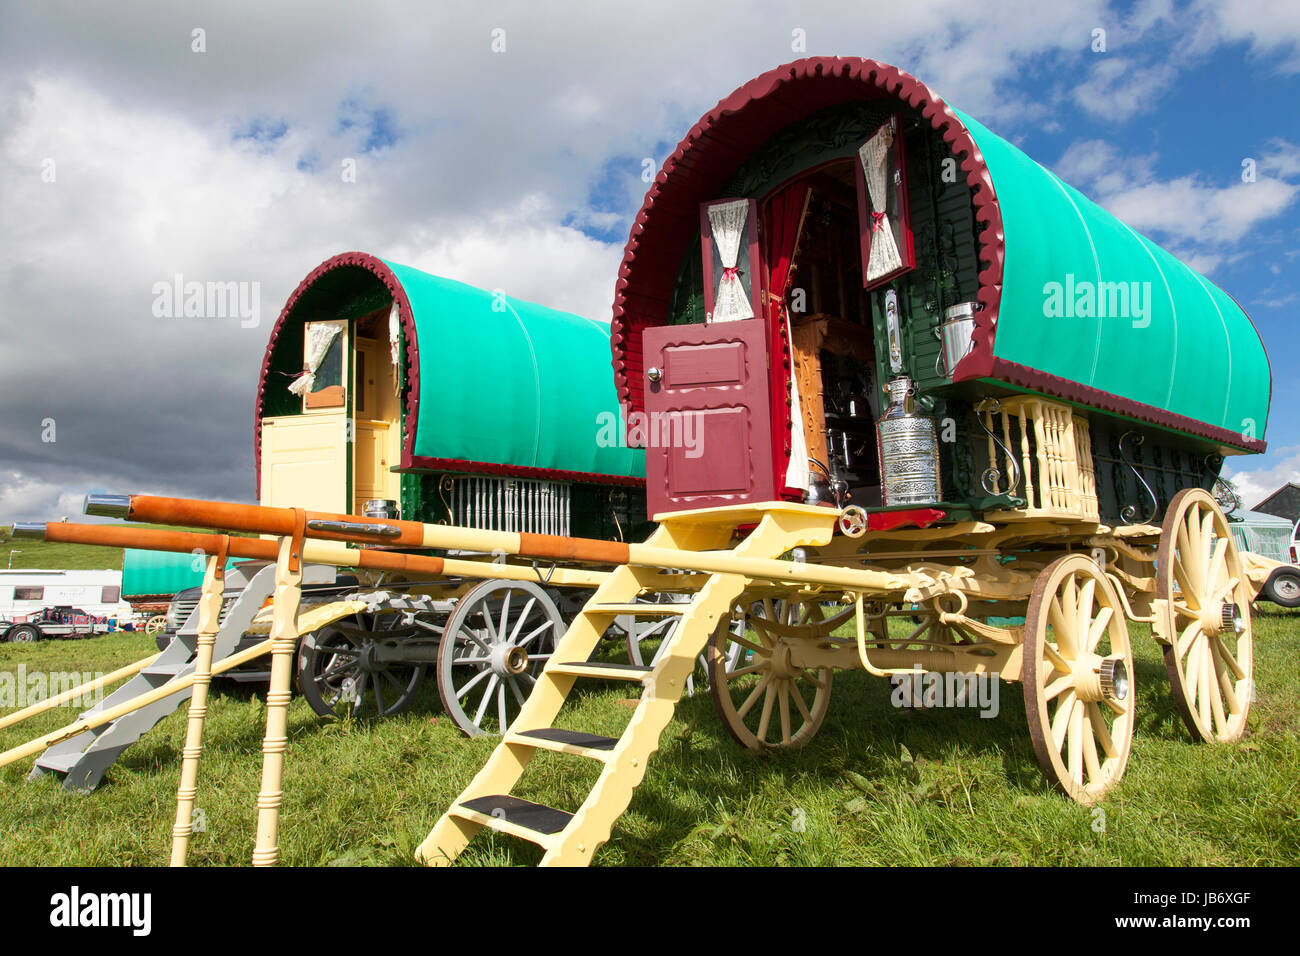 Appleby-in-Westmorland, U.K. 9th June 2017. Traditional bow top gypsy wagons  at the Appleby Horse Fair. The fair Stock Photo